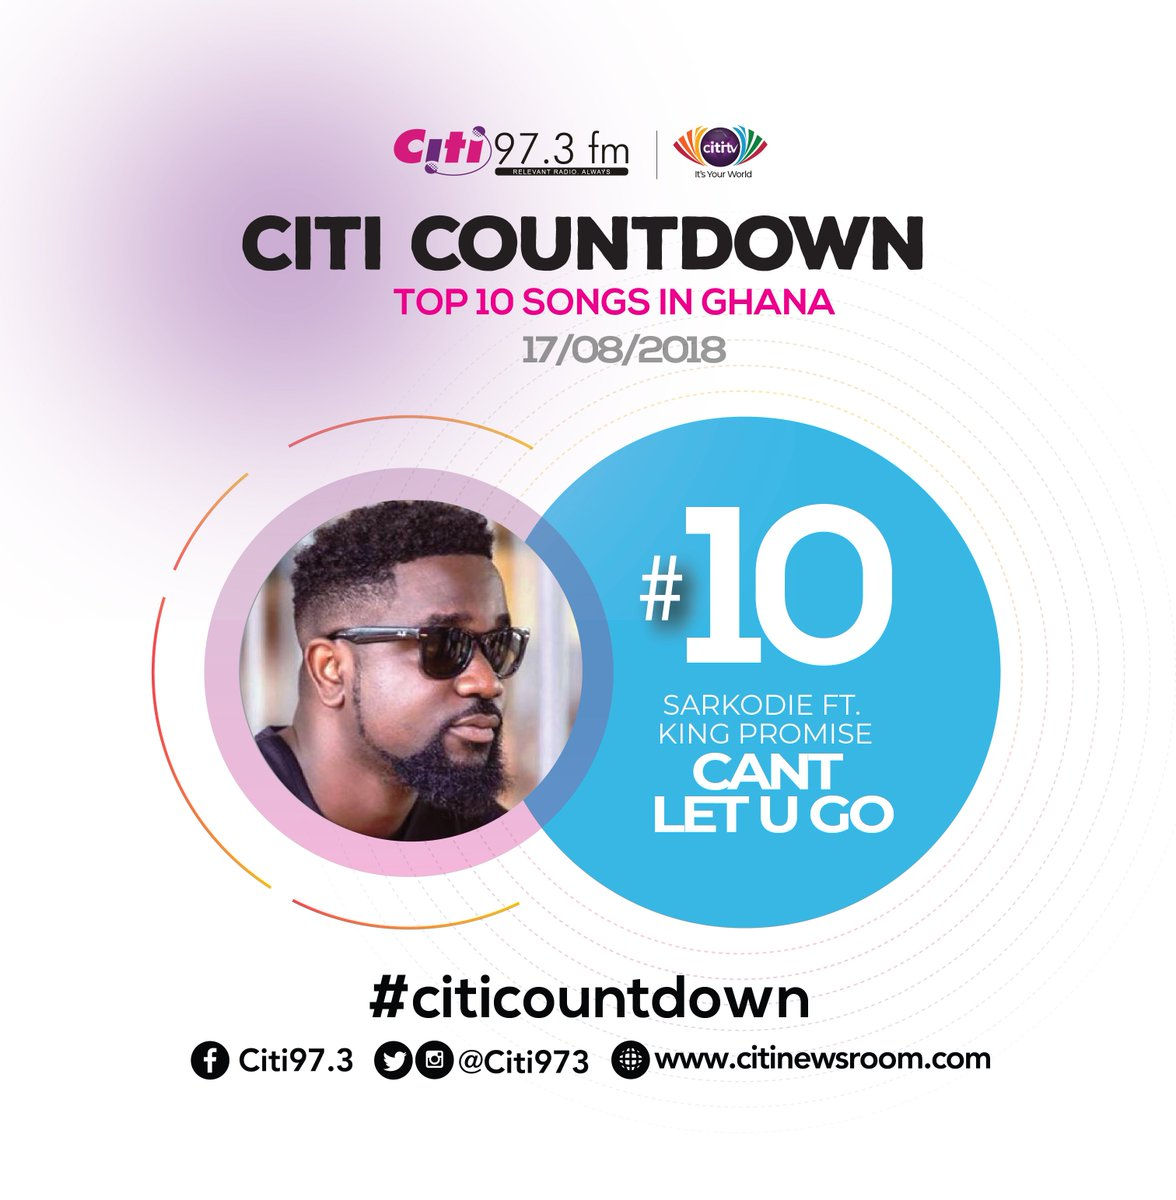 hight resolution of let s get on the chart this week and it s the king sarkodie at number 10